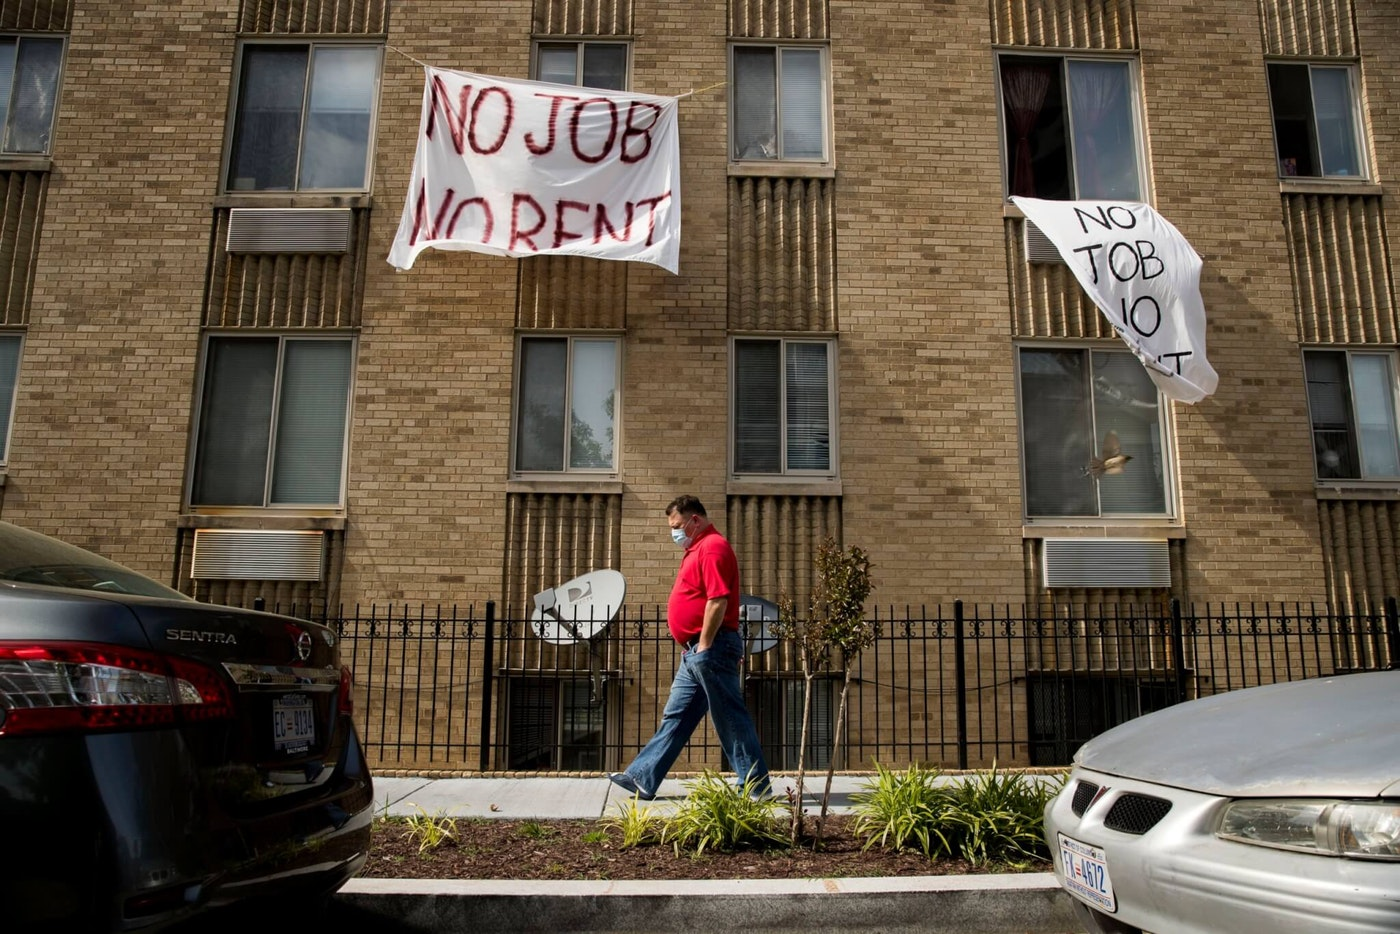 """FILE - In this May 20, 2020, file photo, signs that read """"No Job No Rent"""" hang from the windows of an apartment building during the coronavirus pandemic in Northwest Washington. The pandemic has shut housing courts and prompted authorities around the U.S. to initiate policies protecting renters from eviction. But not everyone is covered, and some landlords are turning to threats and harassment to force tenants out. (AP Photo/Andrew Harnik, File)"""